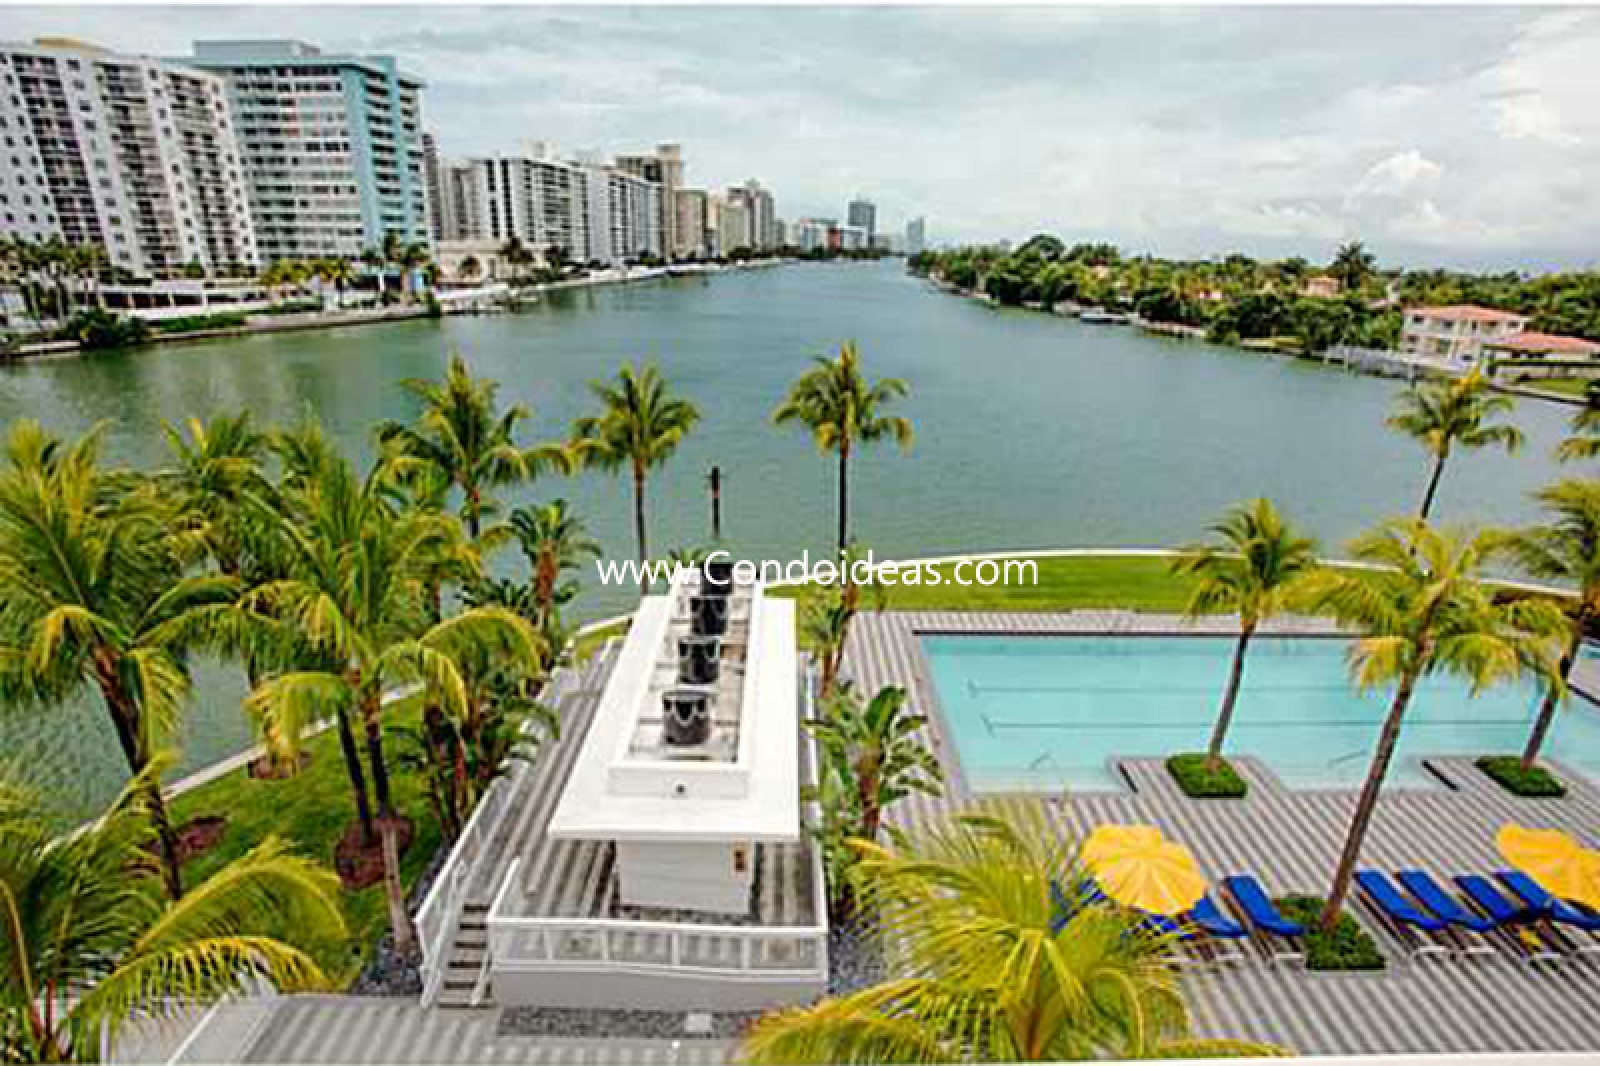 Aqua Homes Condo Development Allison Island Miami Beach Fl